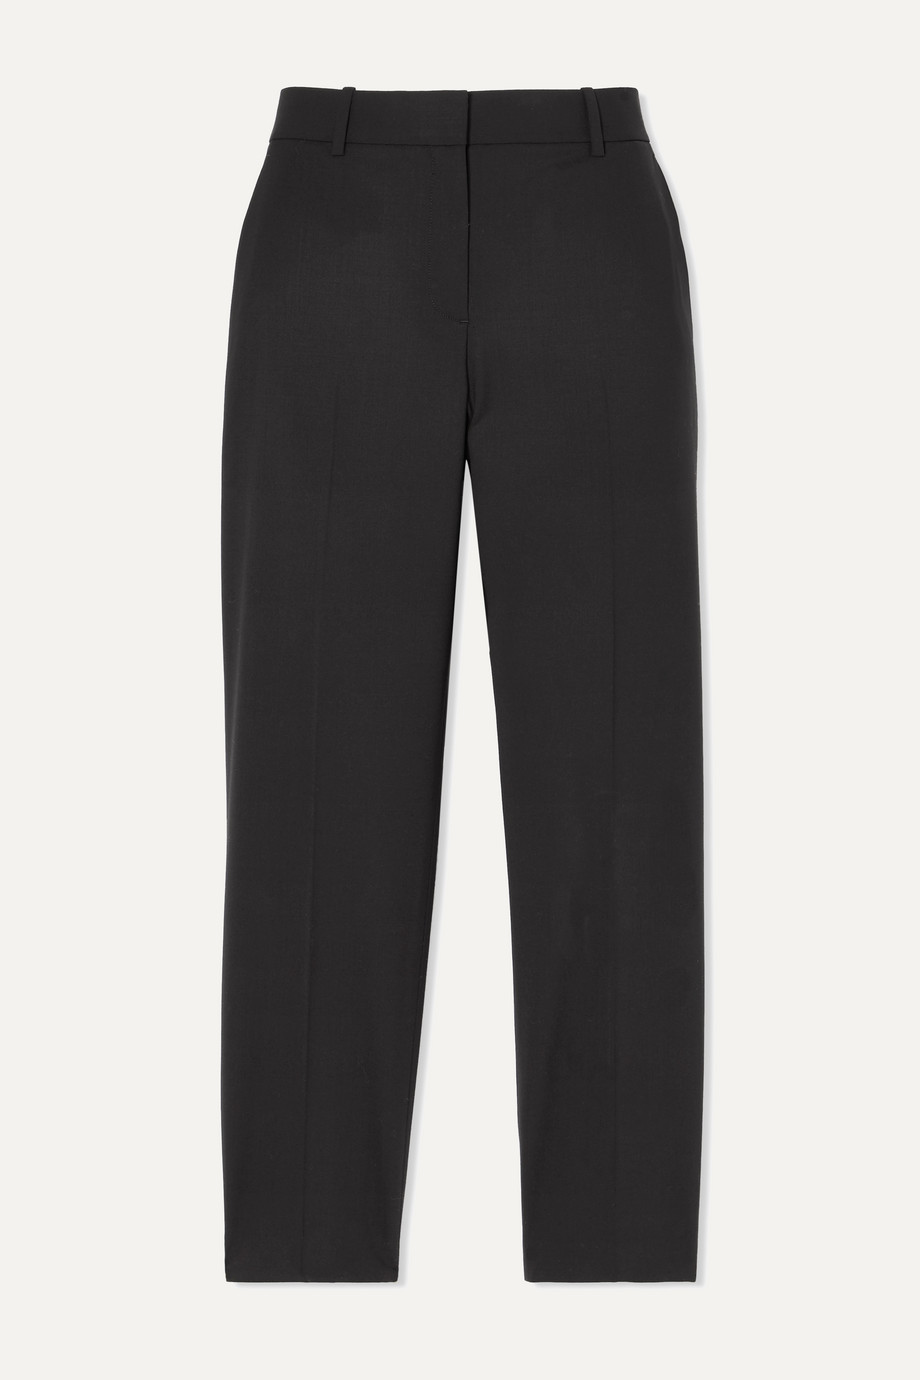 Theory Treeca 2 cropped stretch-wool slim-leg pants